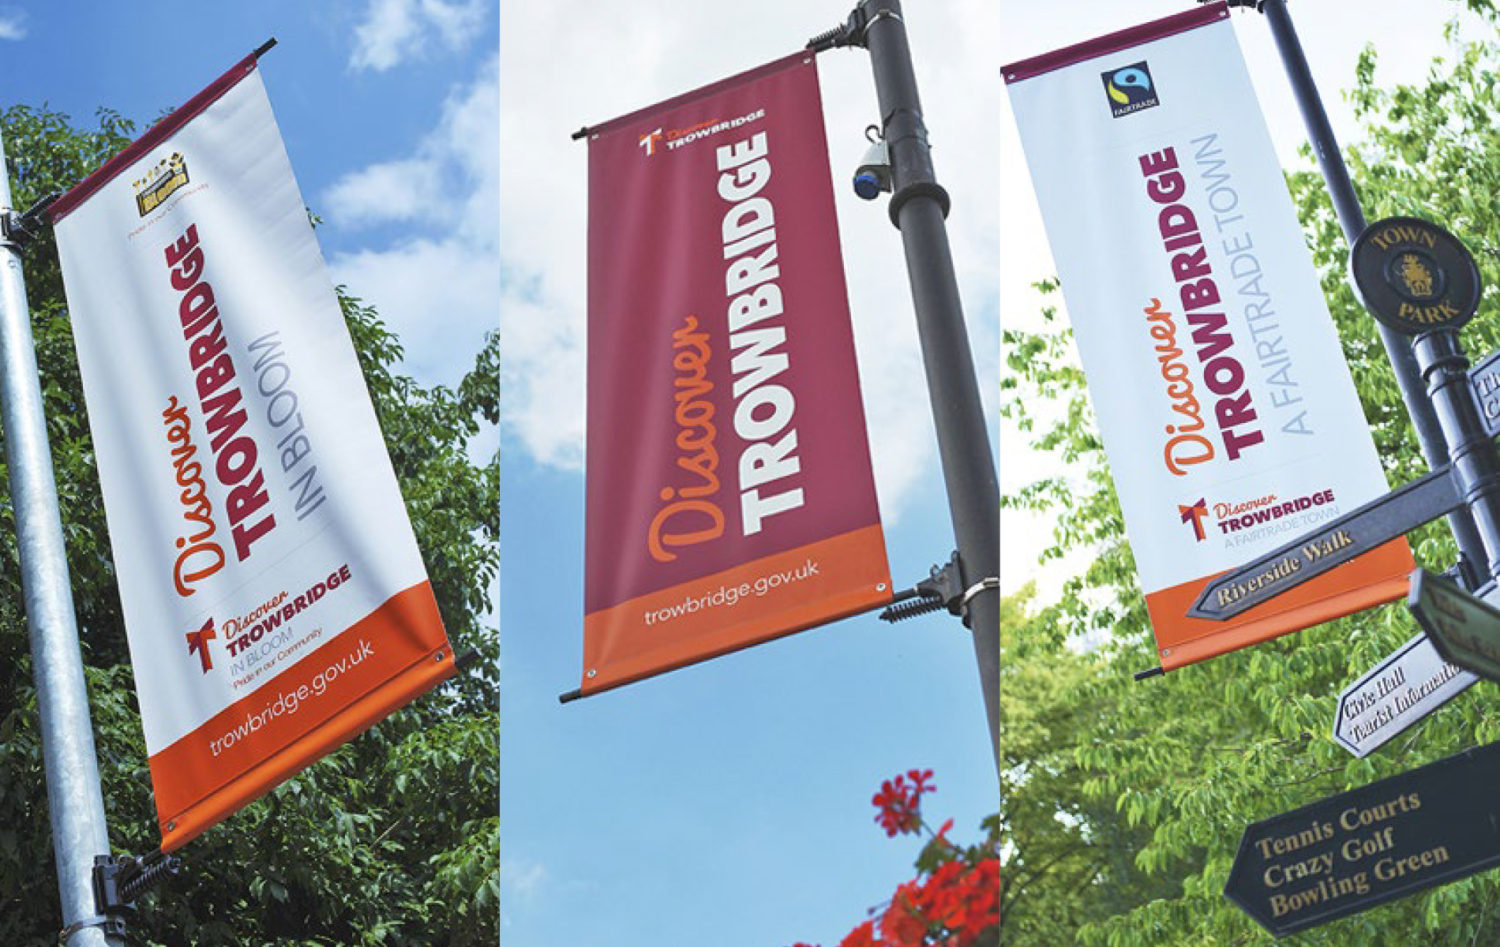 Discover-Trowbridge-banners